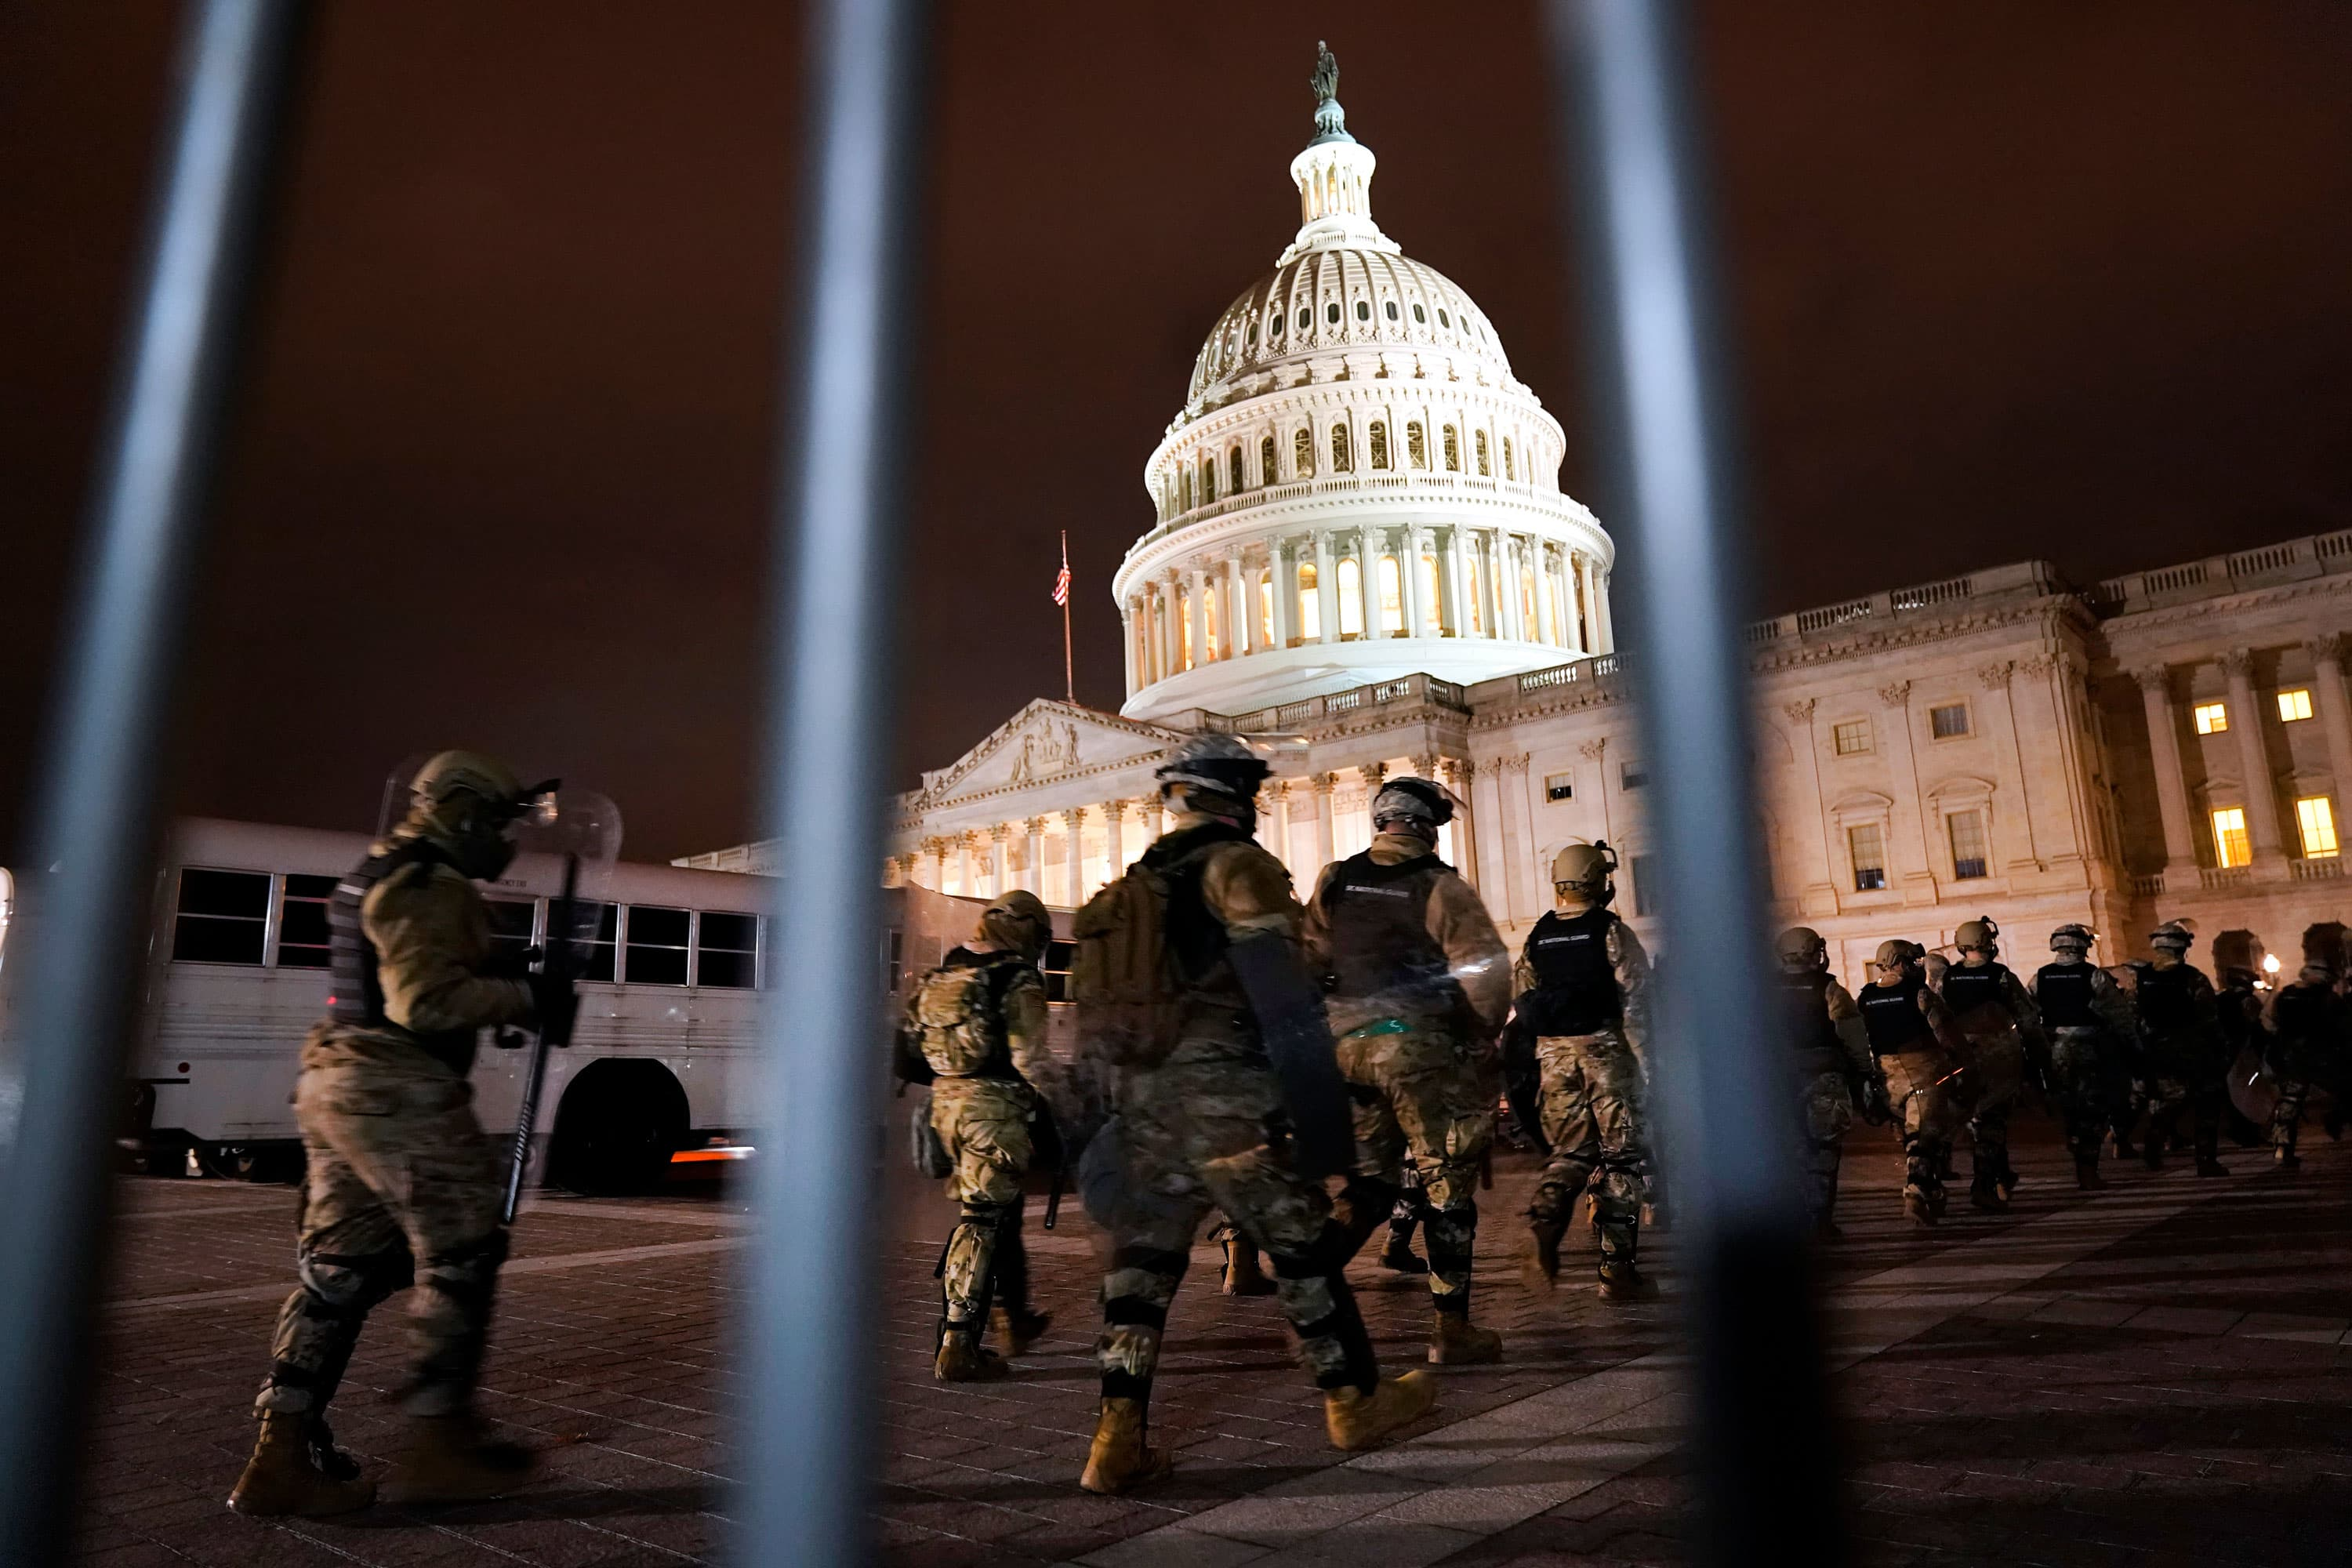 National Guard heads to Capitol after rioters overrun it